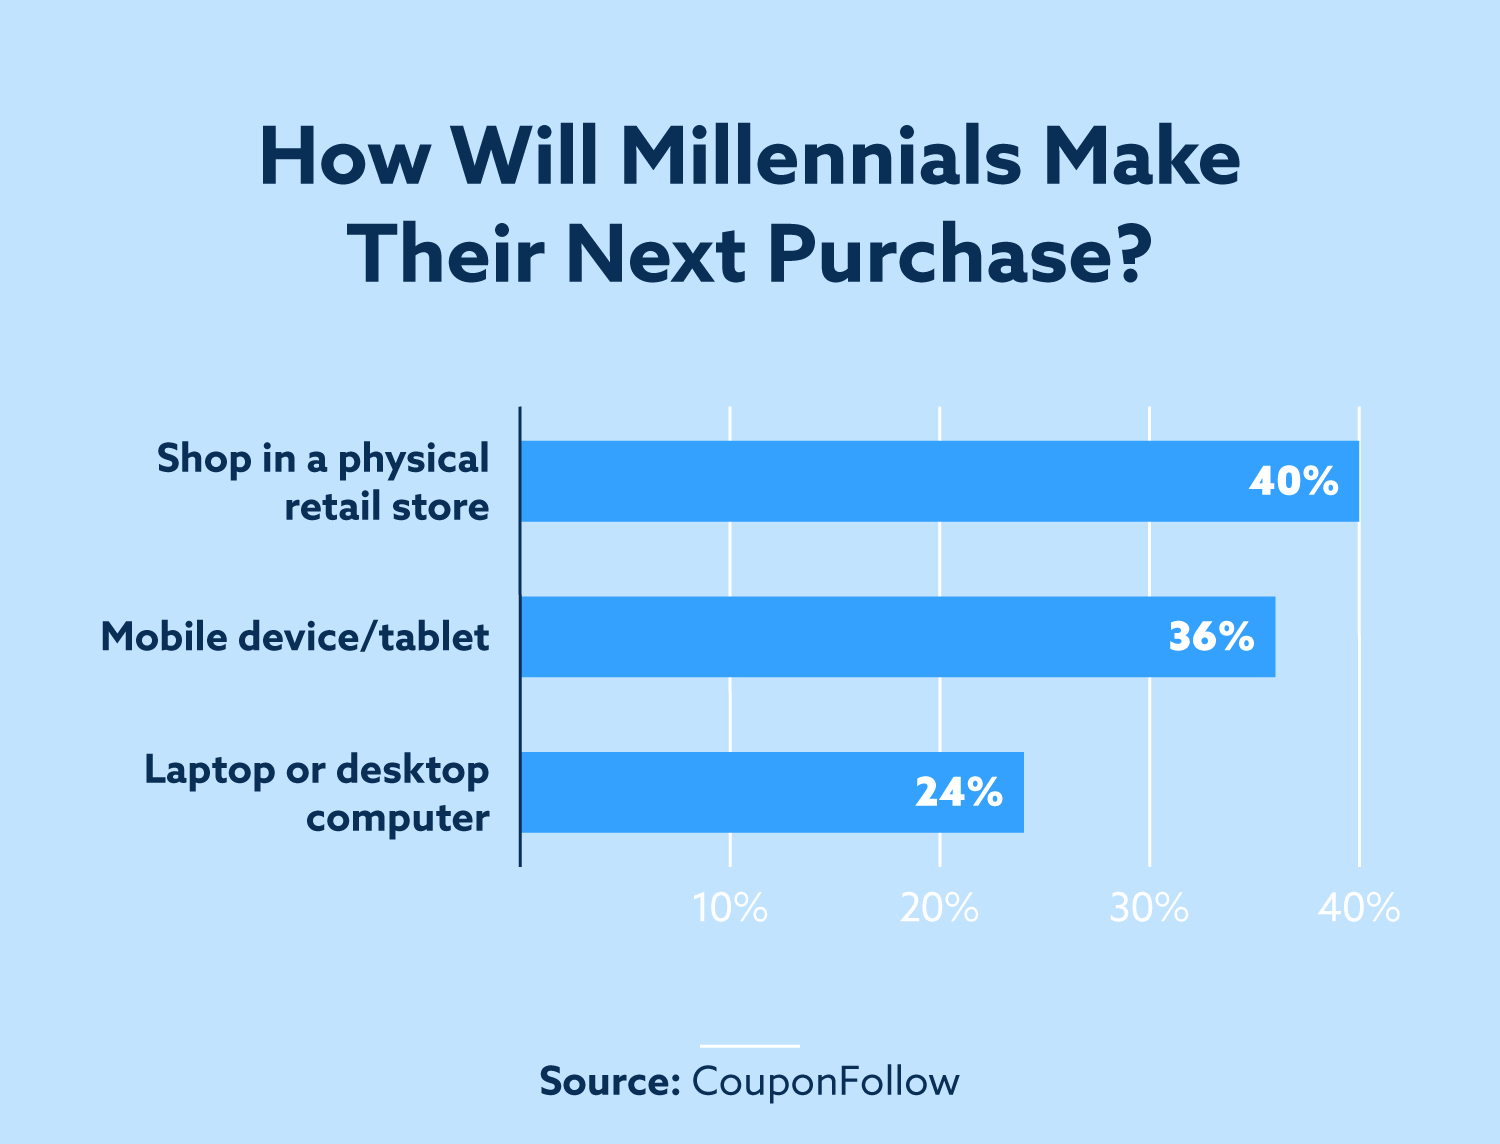 How will millennials make their next purchase? 40% will shop in a physical retail store. 36% will shop on a mobile device/tablet. 24% will shop on a laptop or desktop computer.